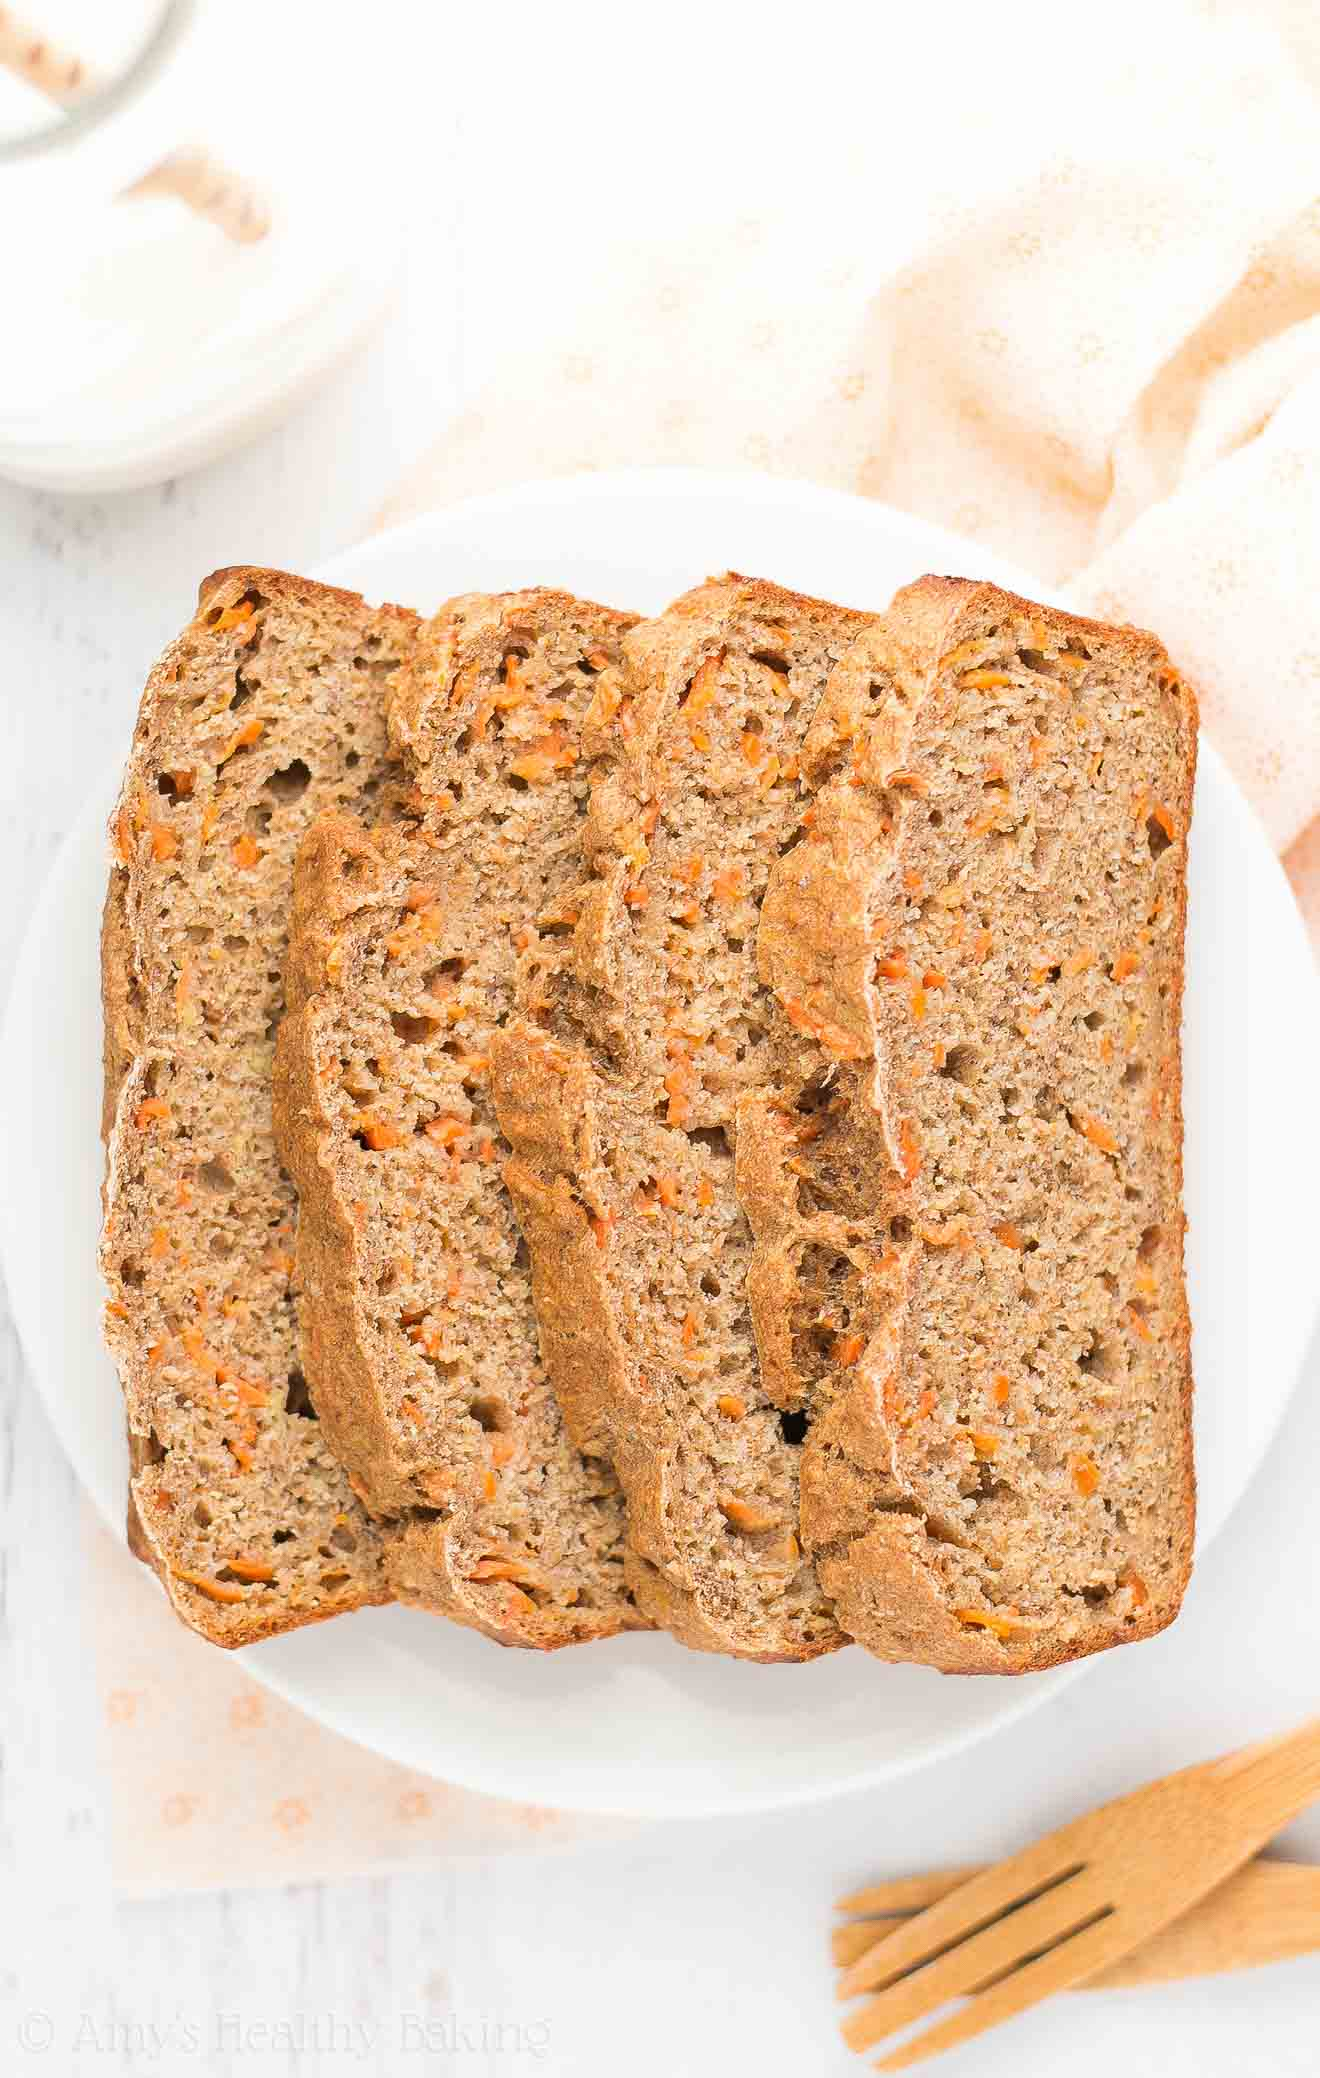 Slices of Healthy Carrot Cake Banana Bread